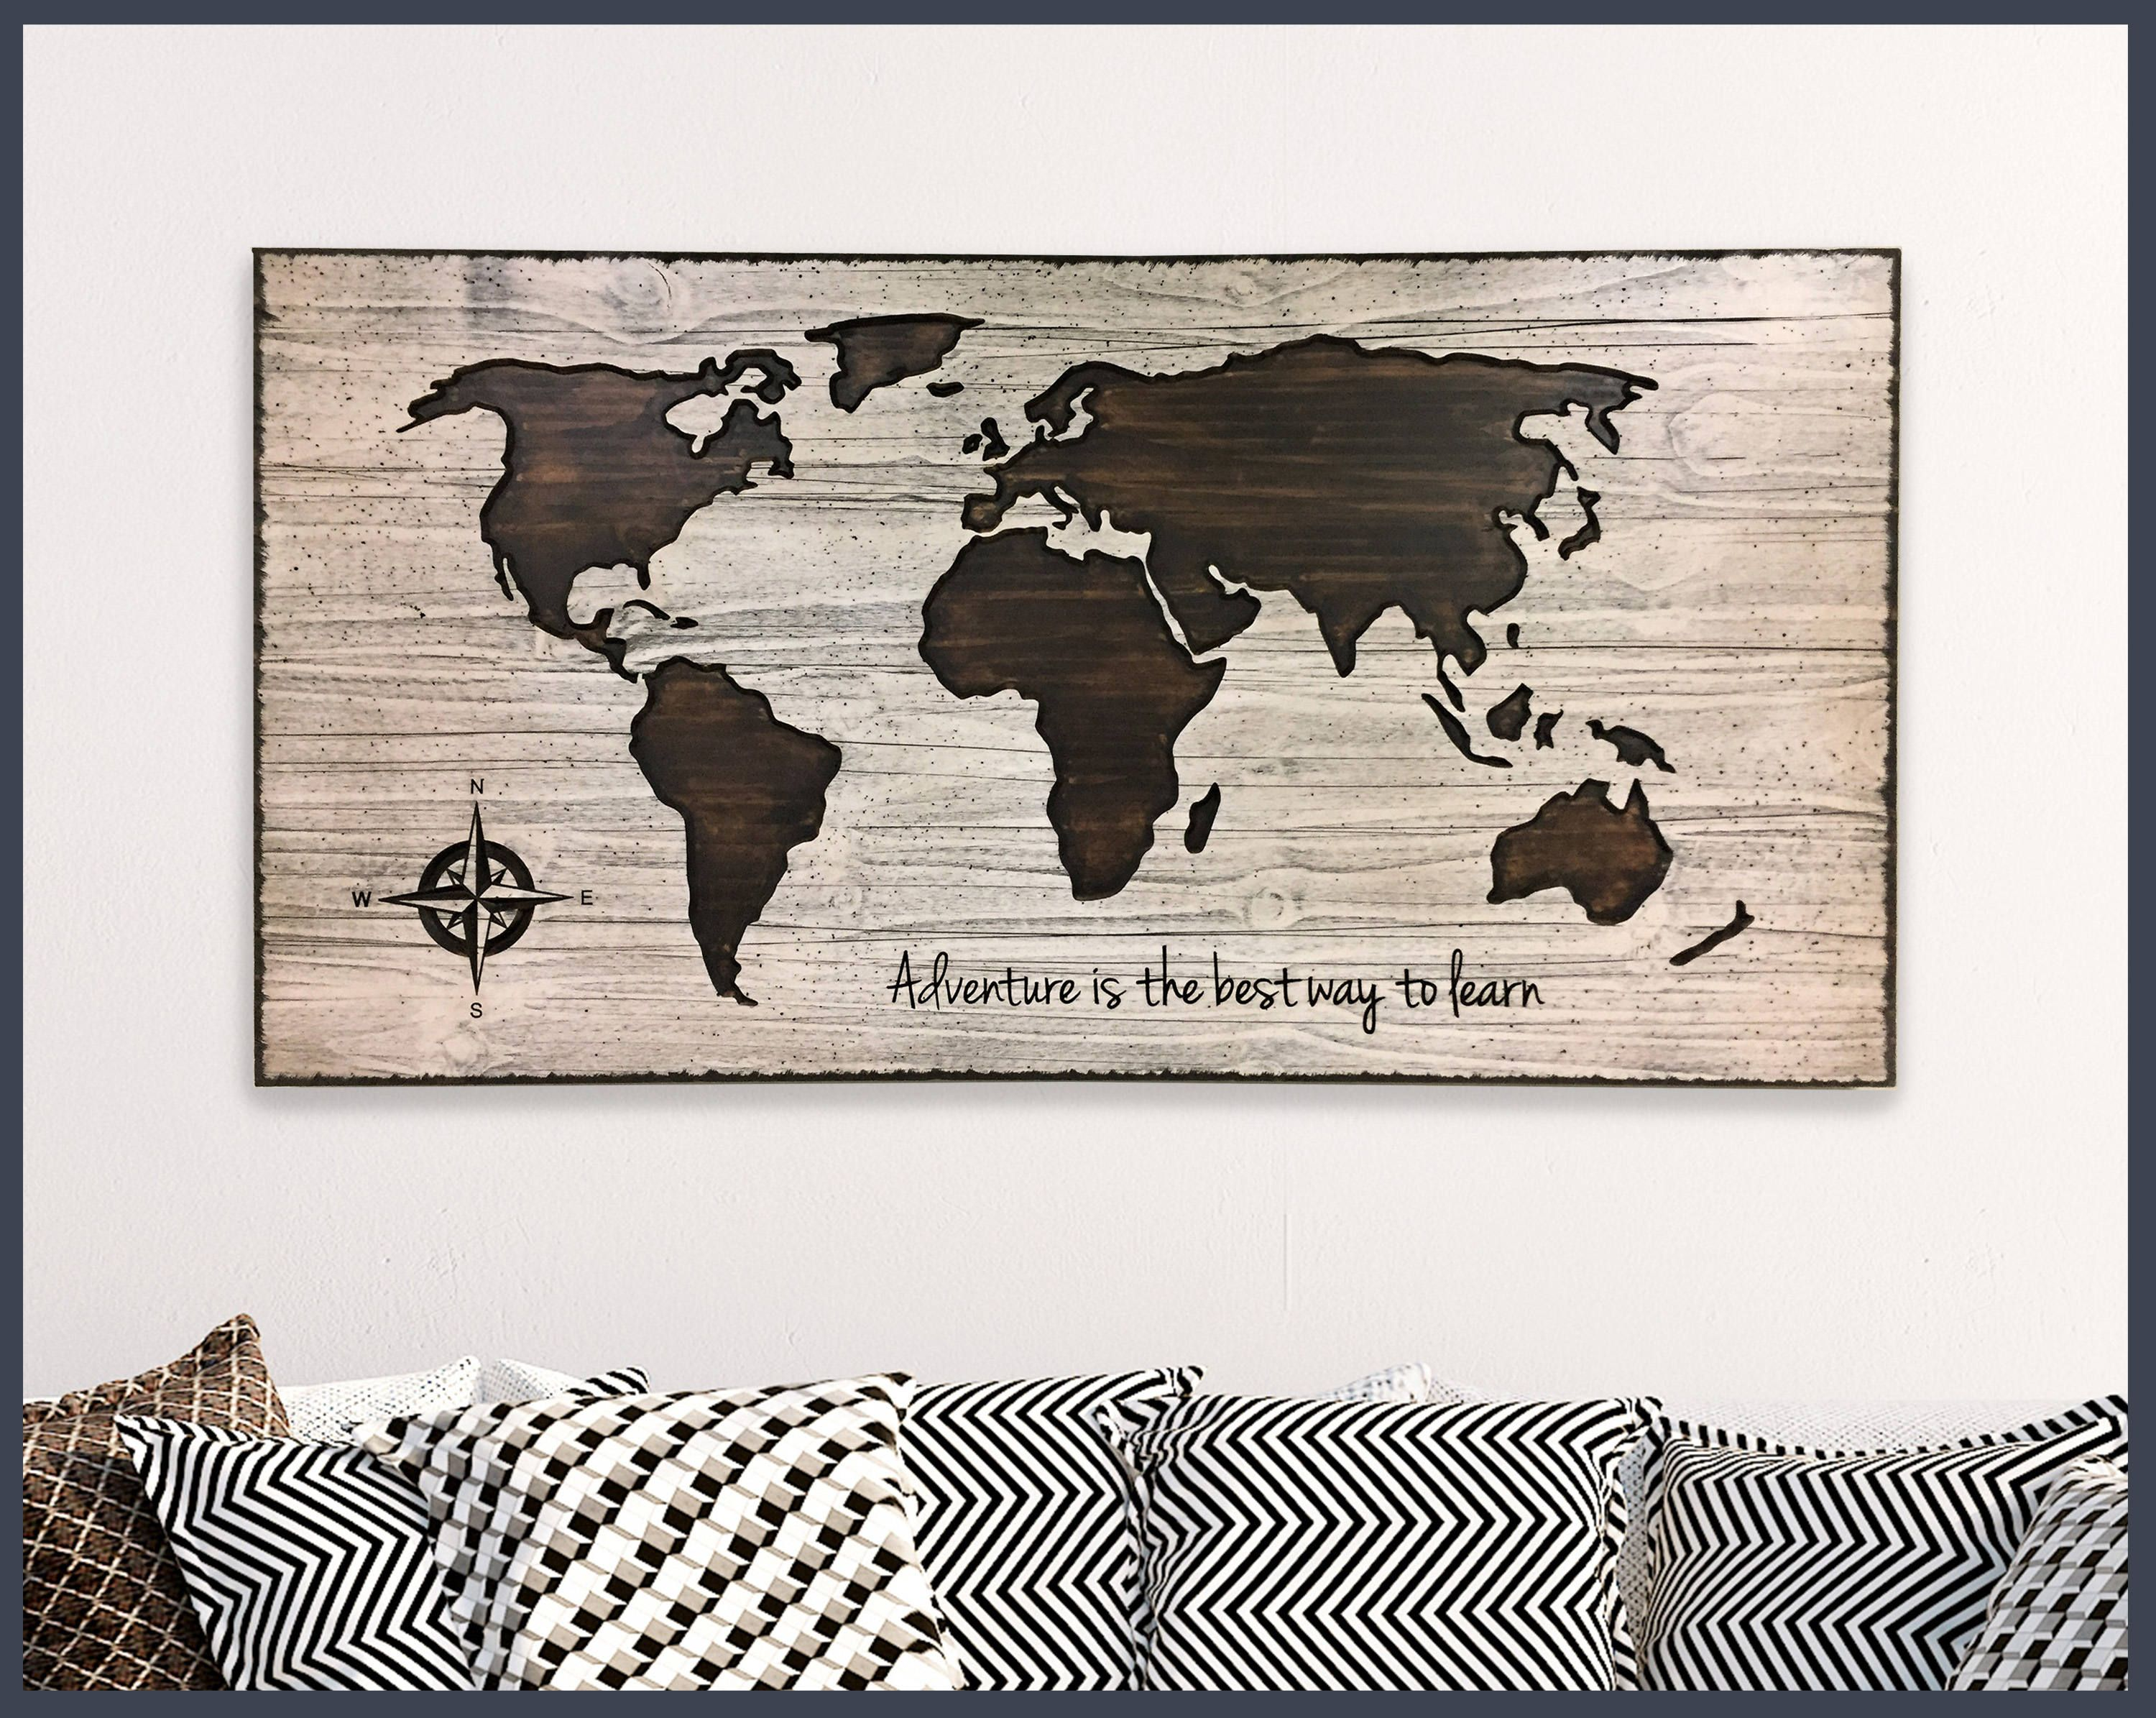 Map Wall Decor, Home Wall Decor, Wood Wall Art, Wooden Map, World Map Wall  Art, Adventure Quote, Custom Quote Sign, Push Pin Map, Office Art